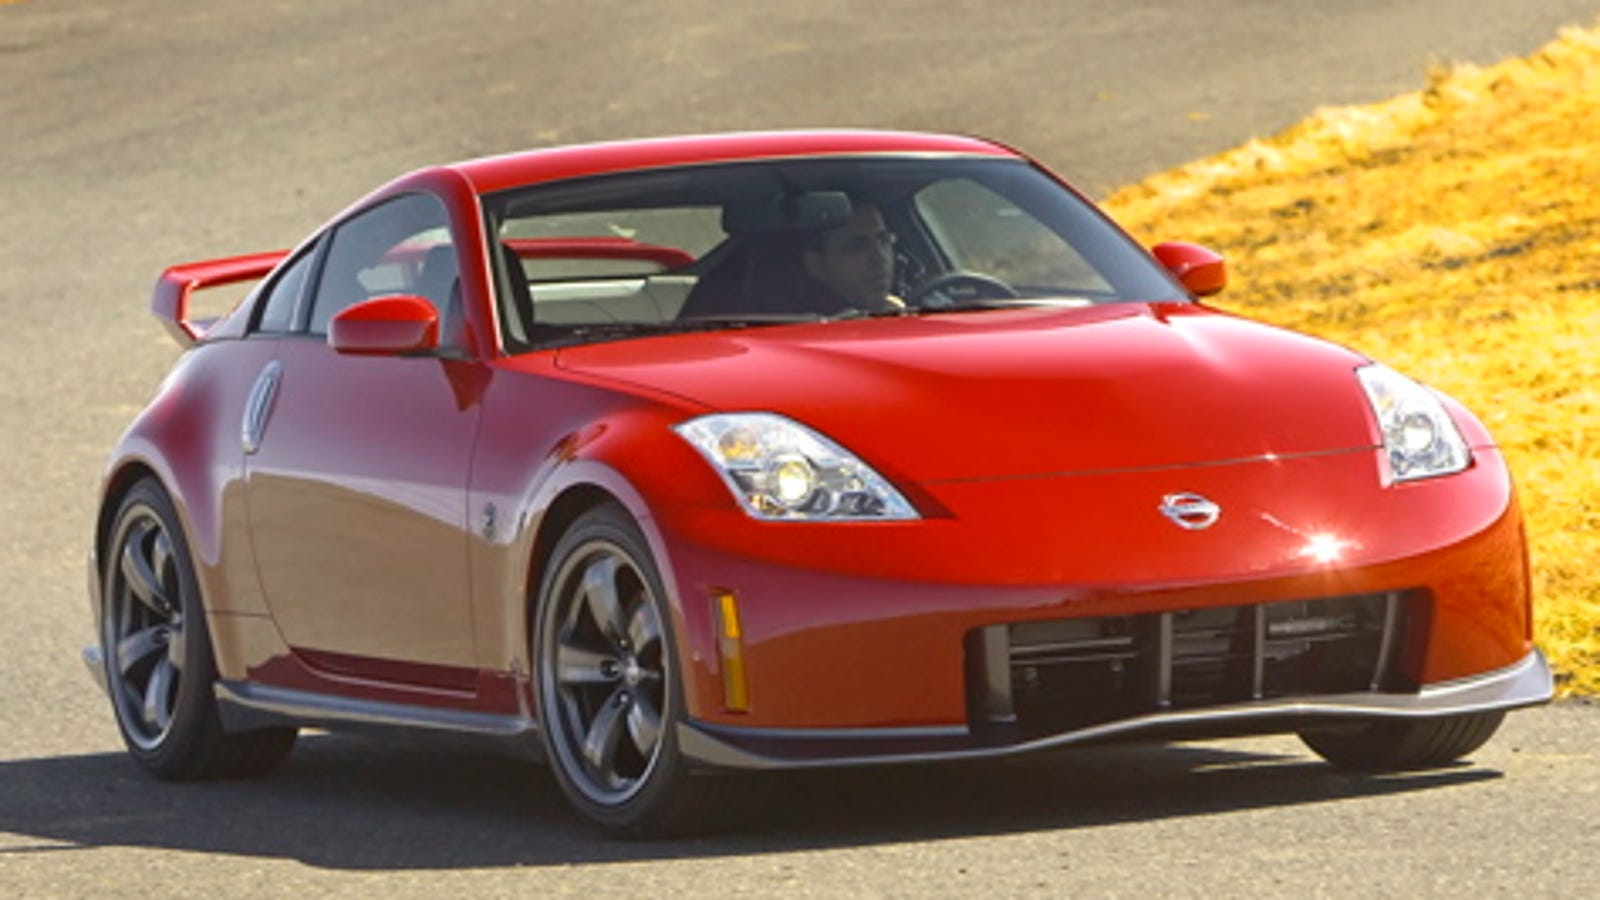 2007 Nissan 350z Tuner ✓ Nissan Recomended Car